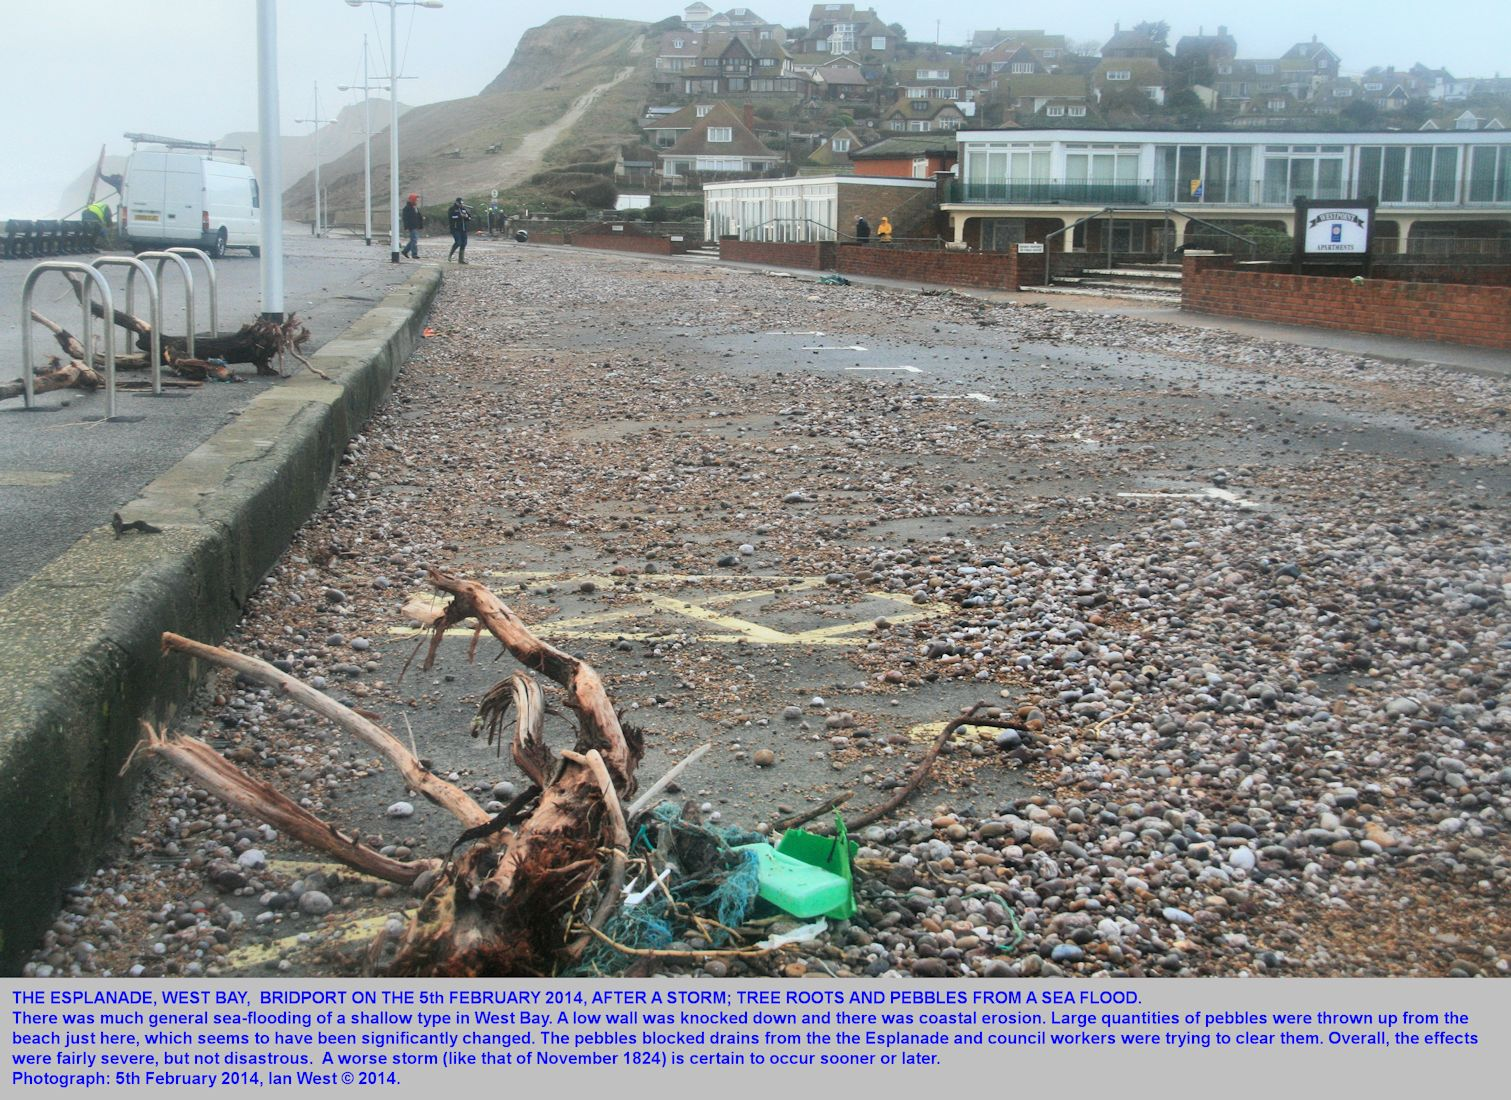 After a bad storm of the night of the 4-5th February 2014, the Esplanade is strewn with pebbles and drift wood, West Bay, Bridport, Dorset